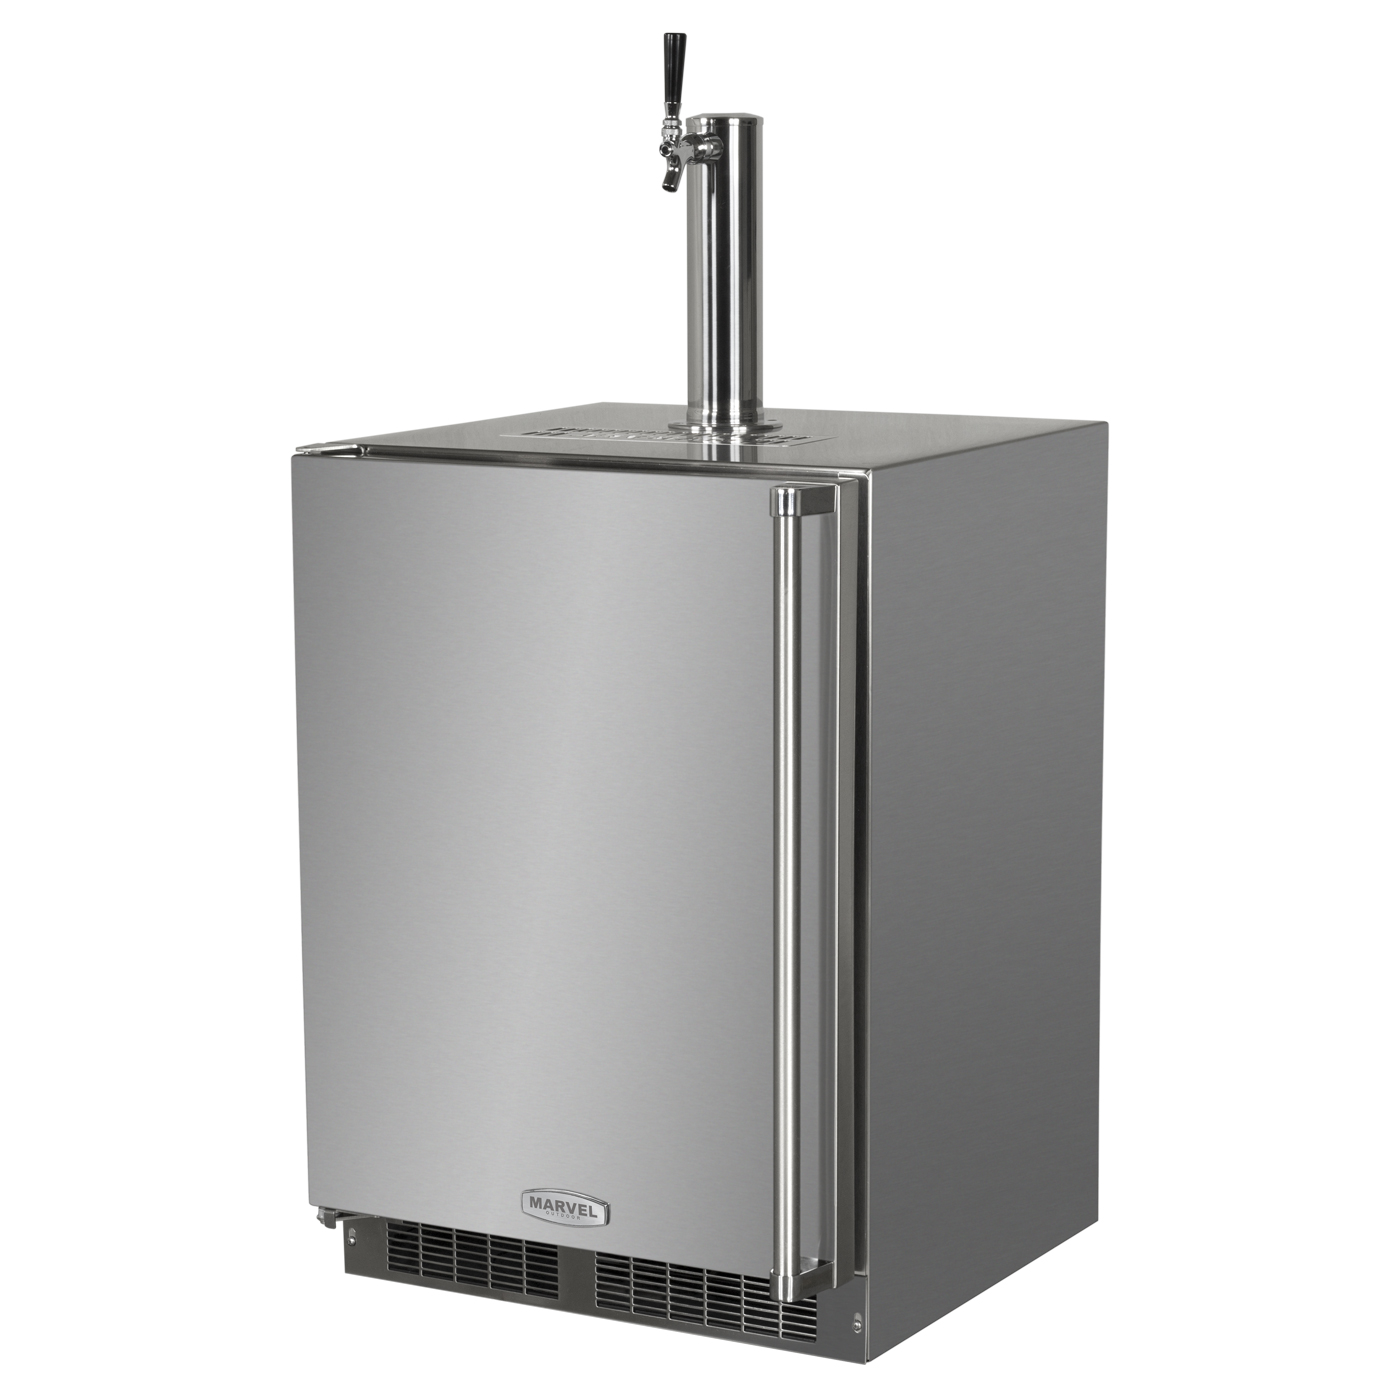 "Model: MO24BSS2RS | Marvel  Outdoor 24"" Single Tap Built In Beer Dispenser with Stainless Steel Door"